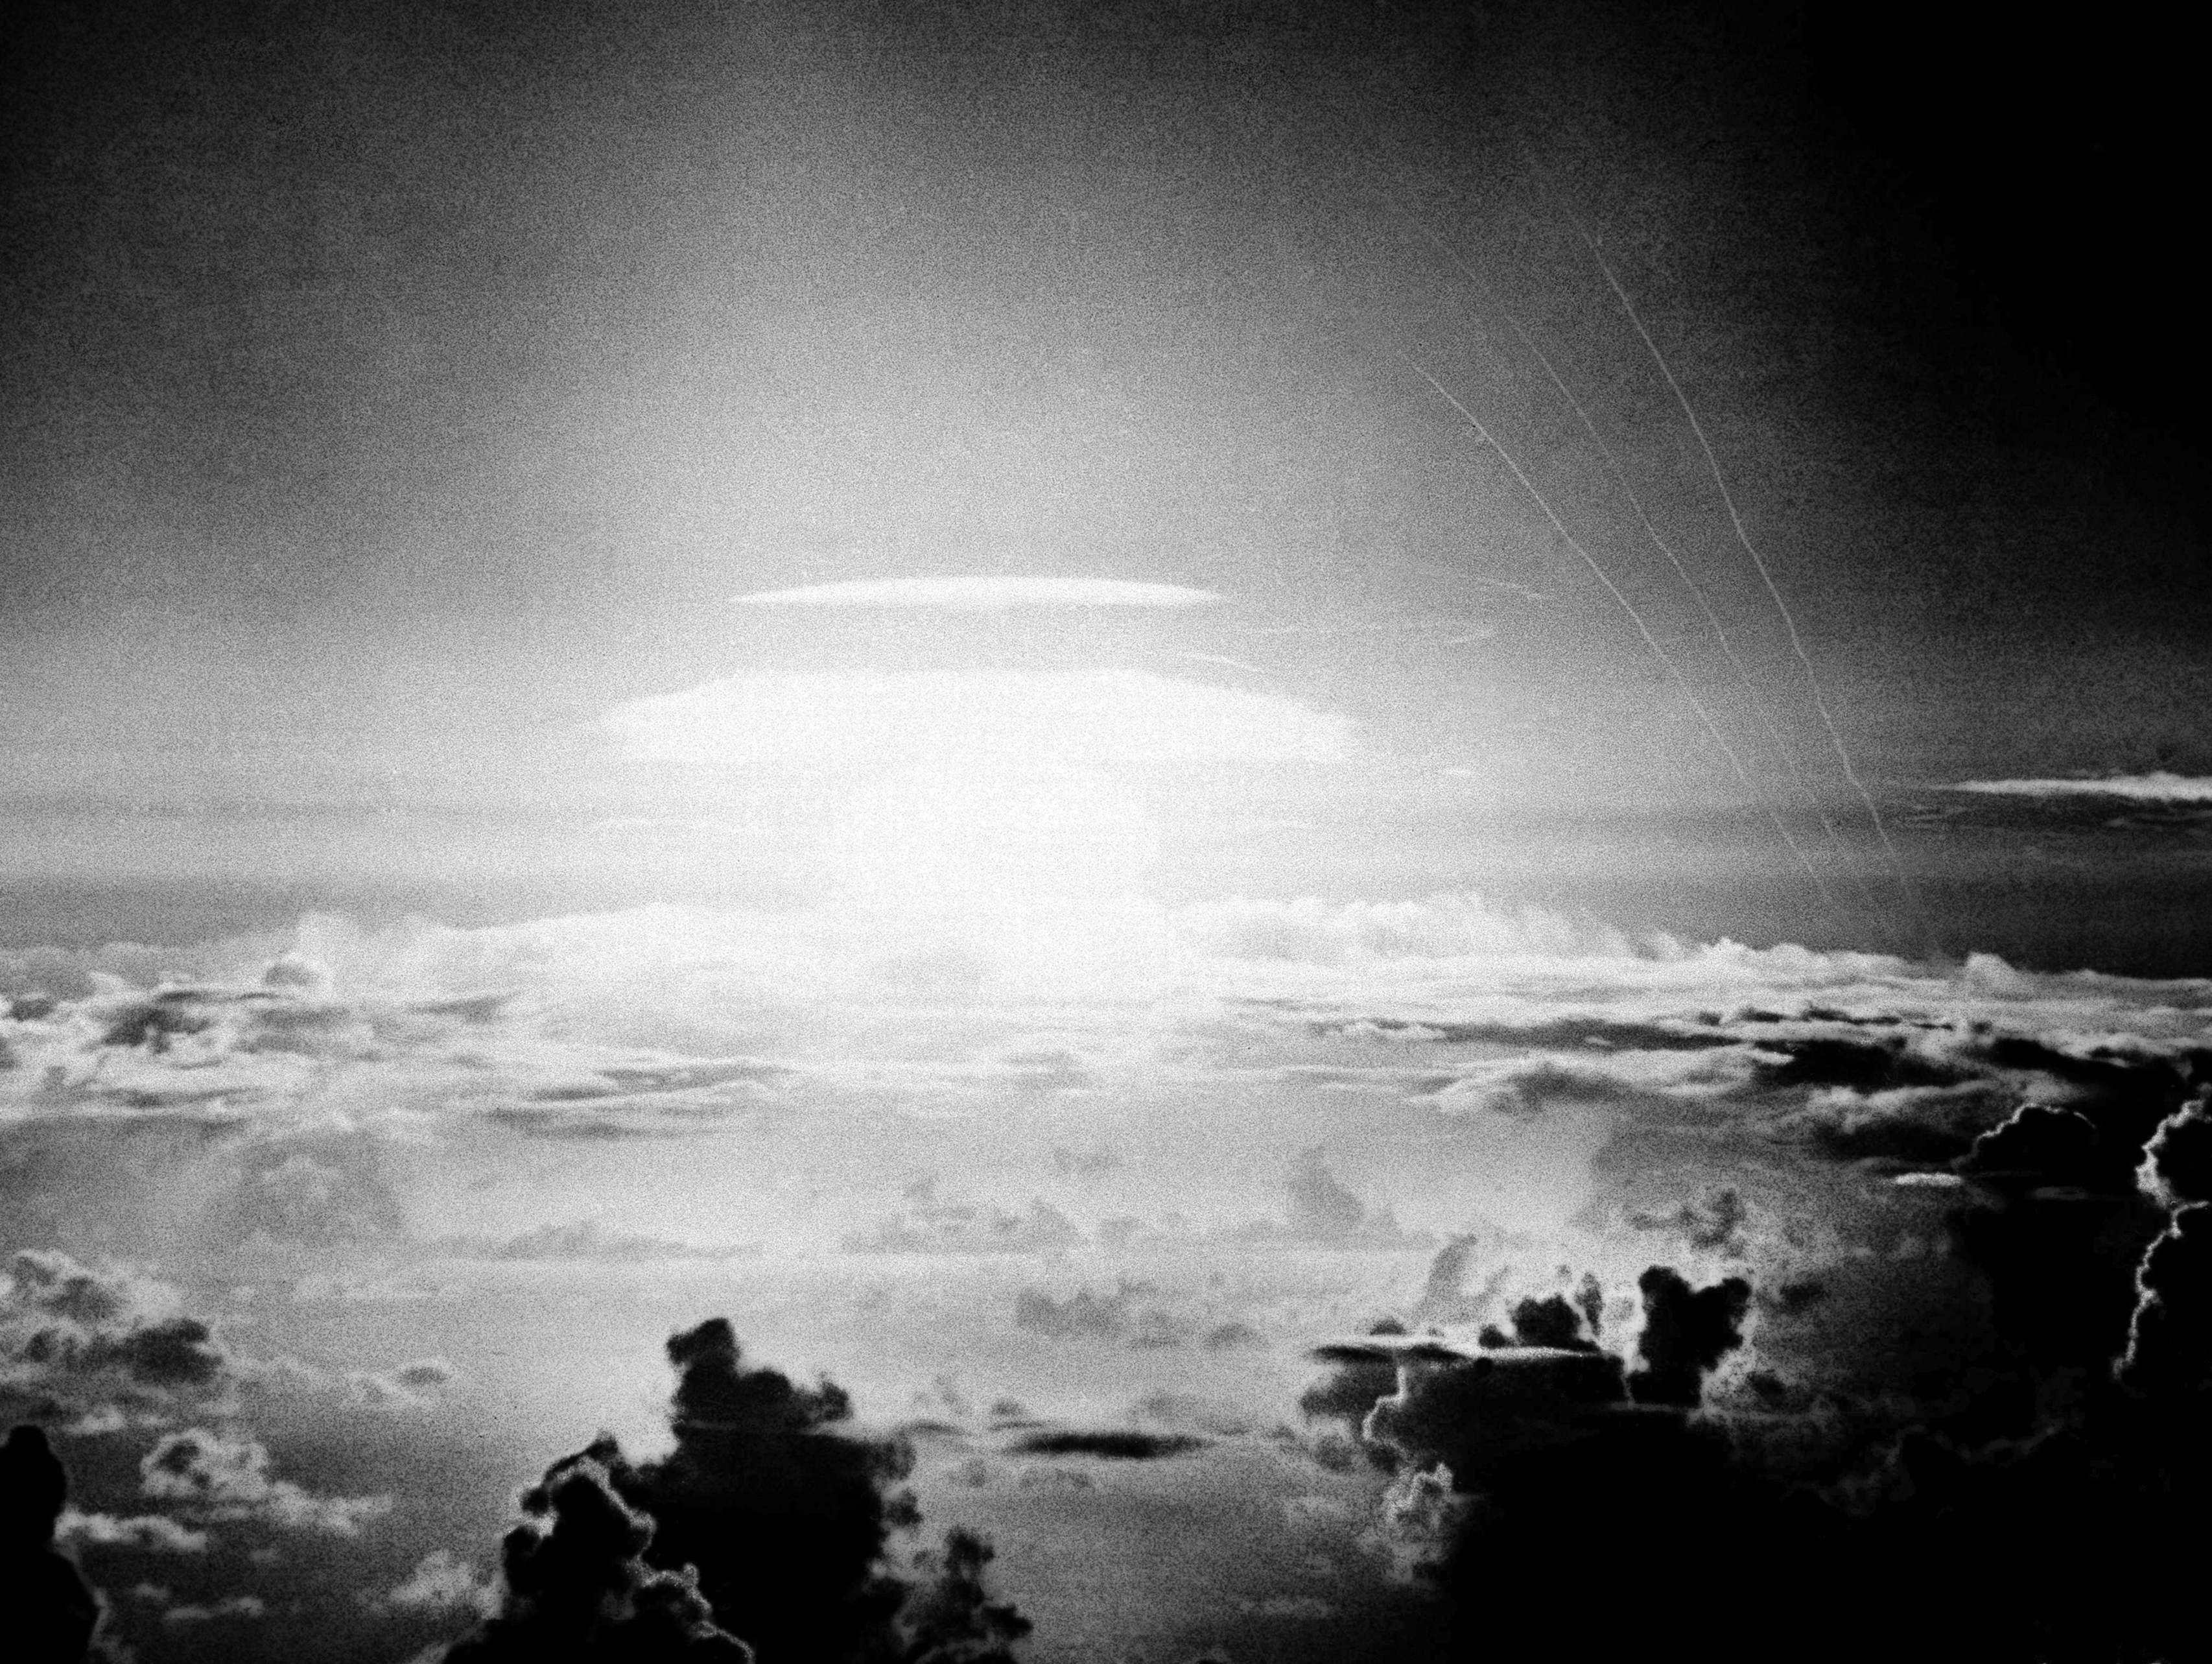 In this May 21, 1956, photo, the fireball of a hydrogen bomb lights the Pacific sky a few seconds after the bomb was released over Bikini Atoll. A decade earlier, the island chain became known as a nuclear test site thanks to atom bombs designed to destroy naval fleets. (AP)